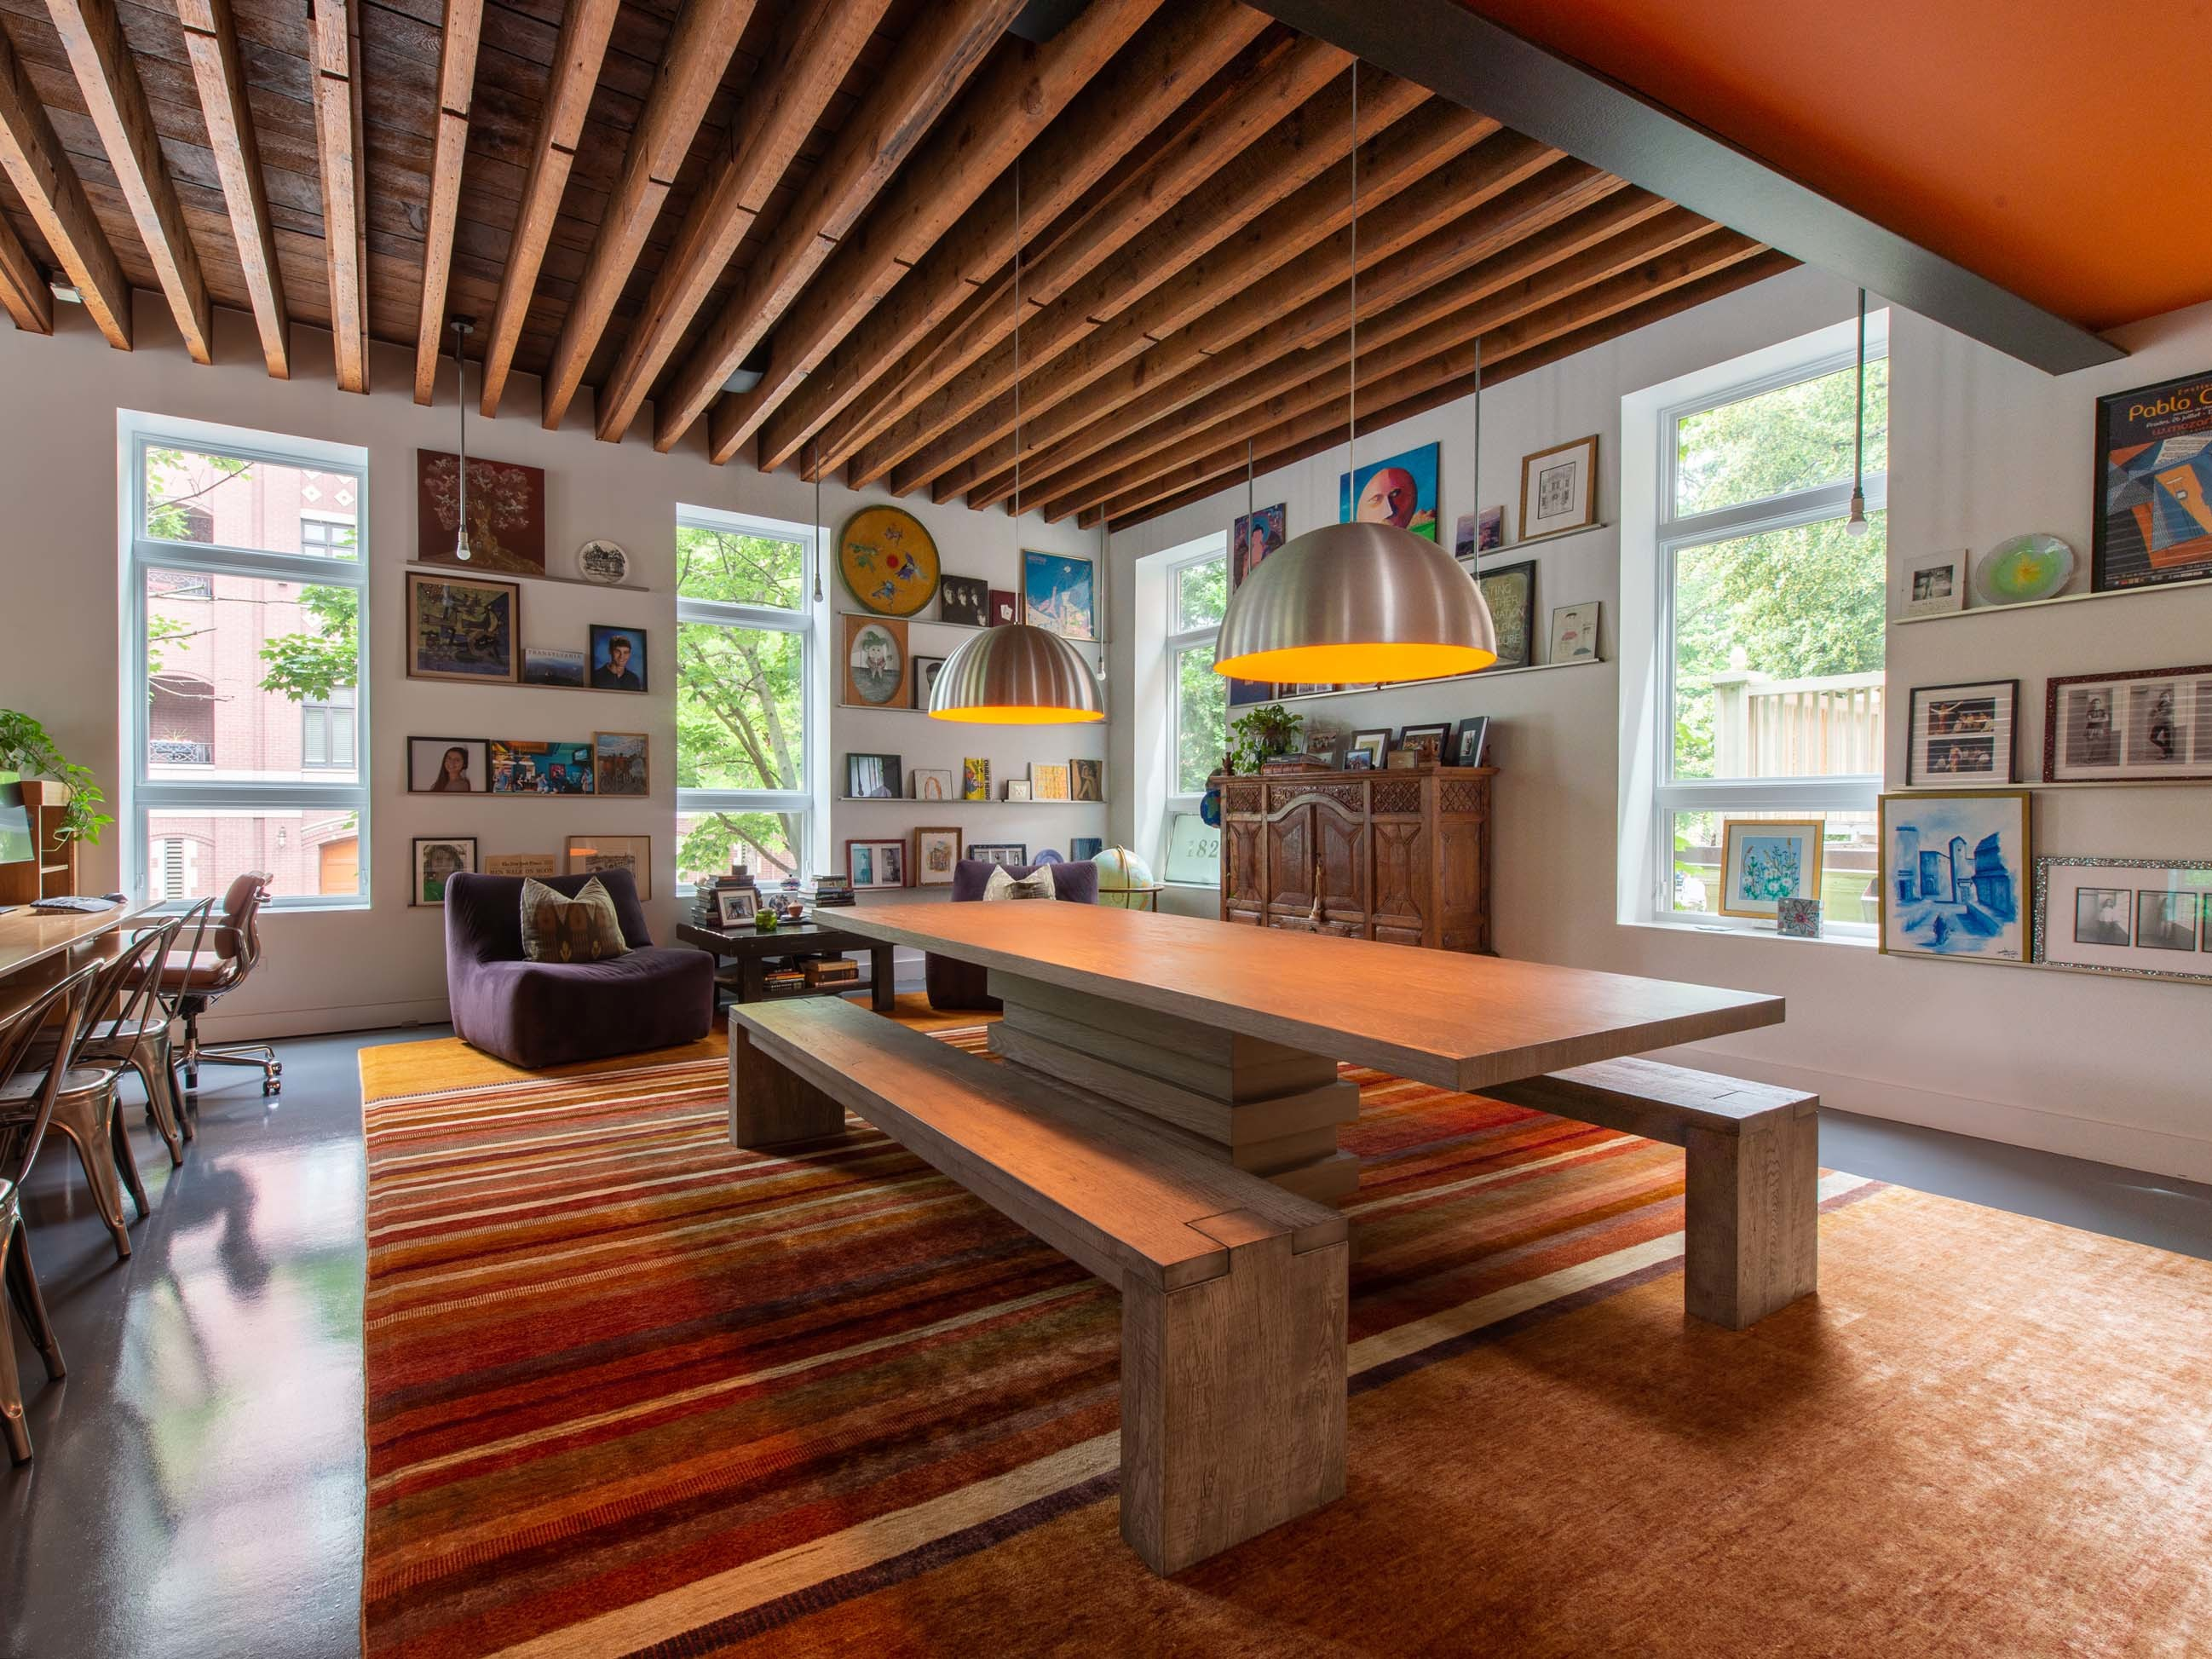 Joyful home in Lincoln Park